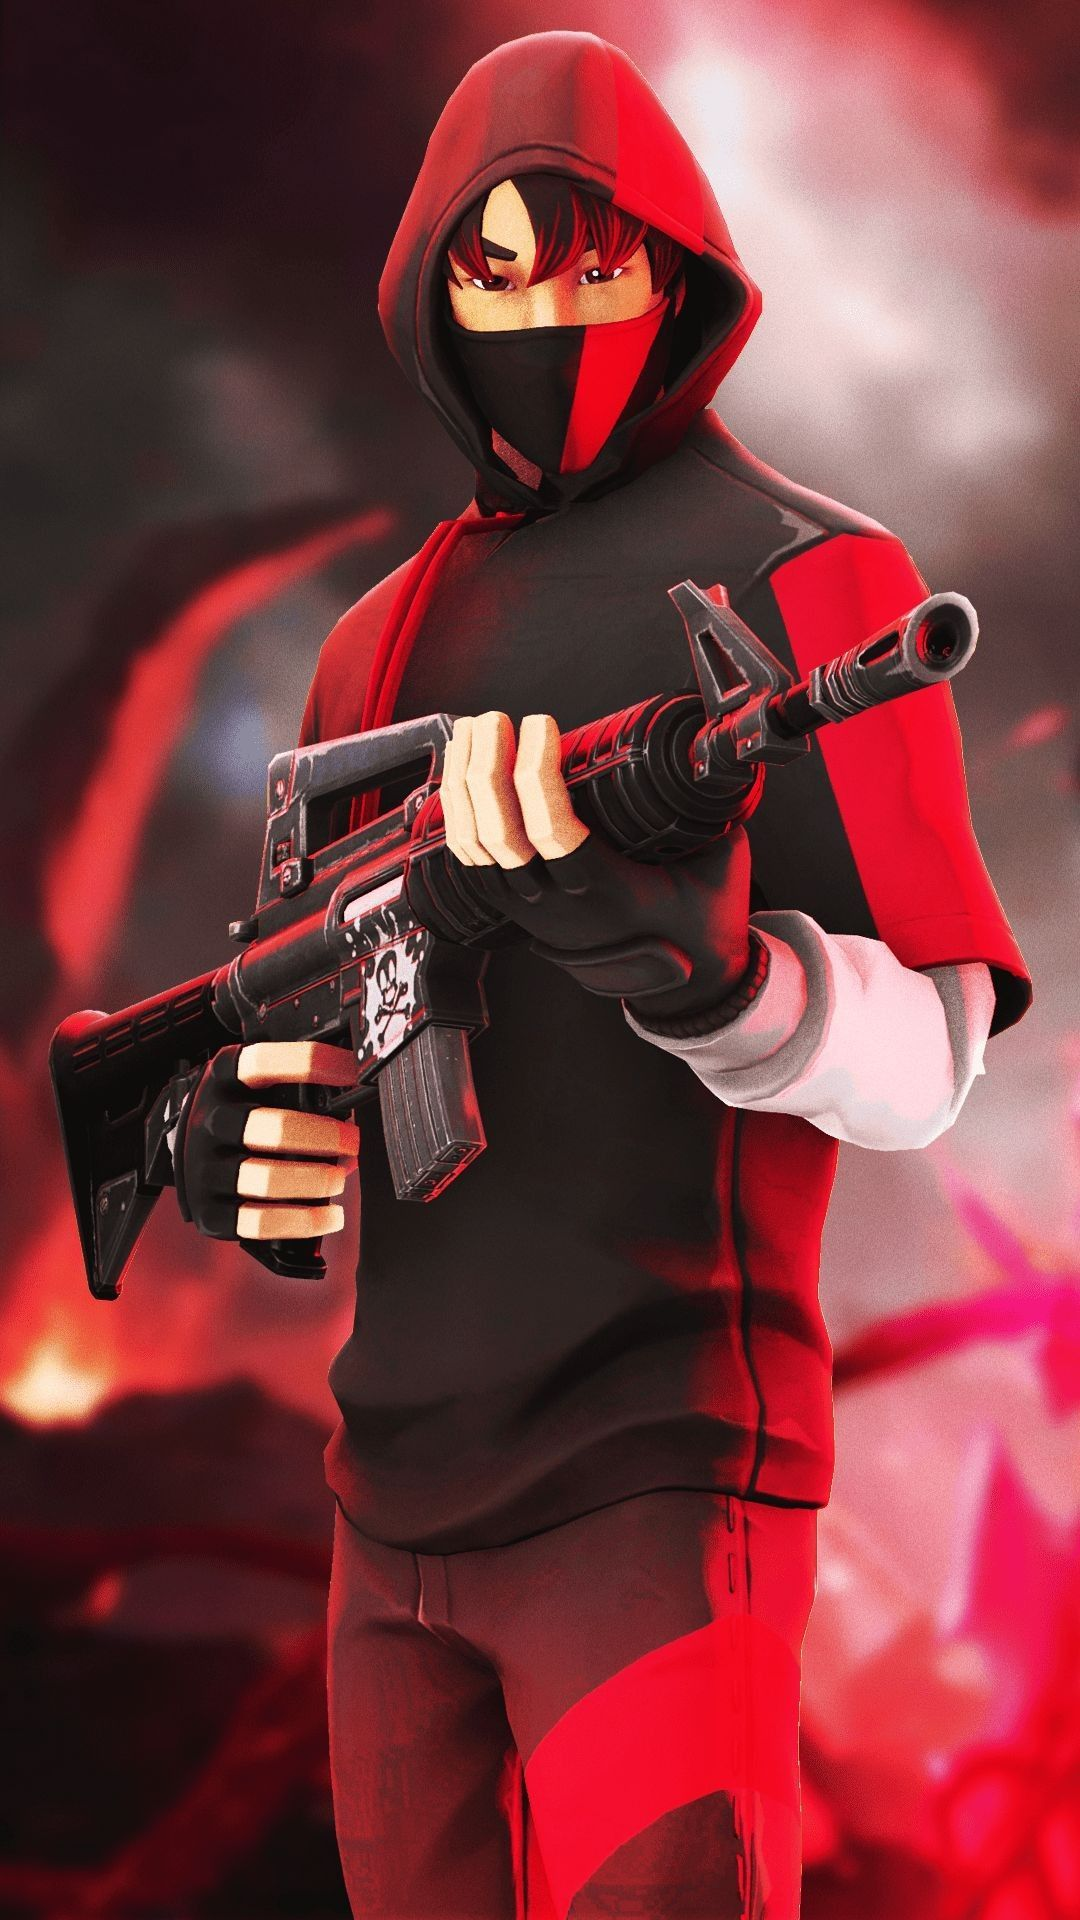 Miniatura Fortnite Ikonik Skin 3d in 2020 Gaming